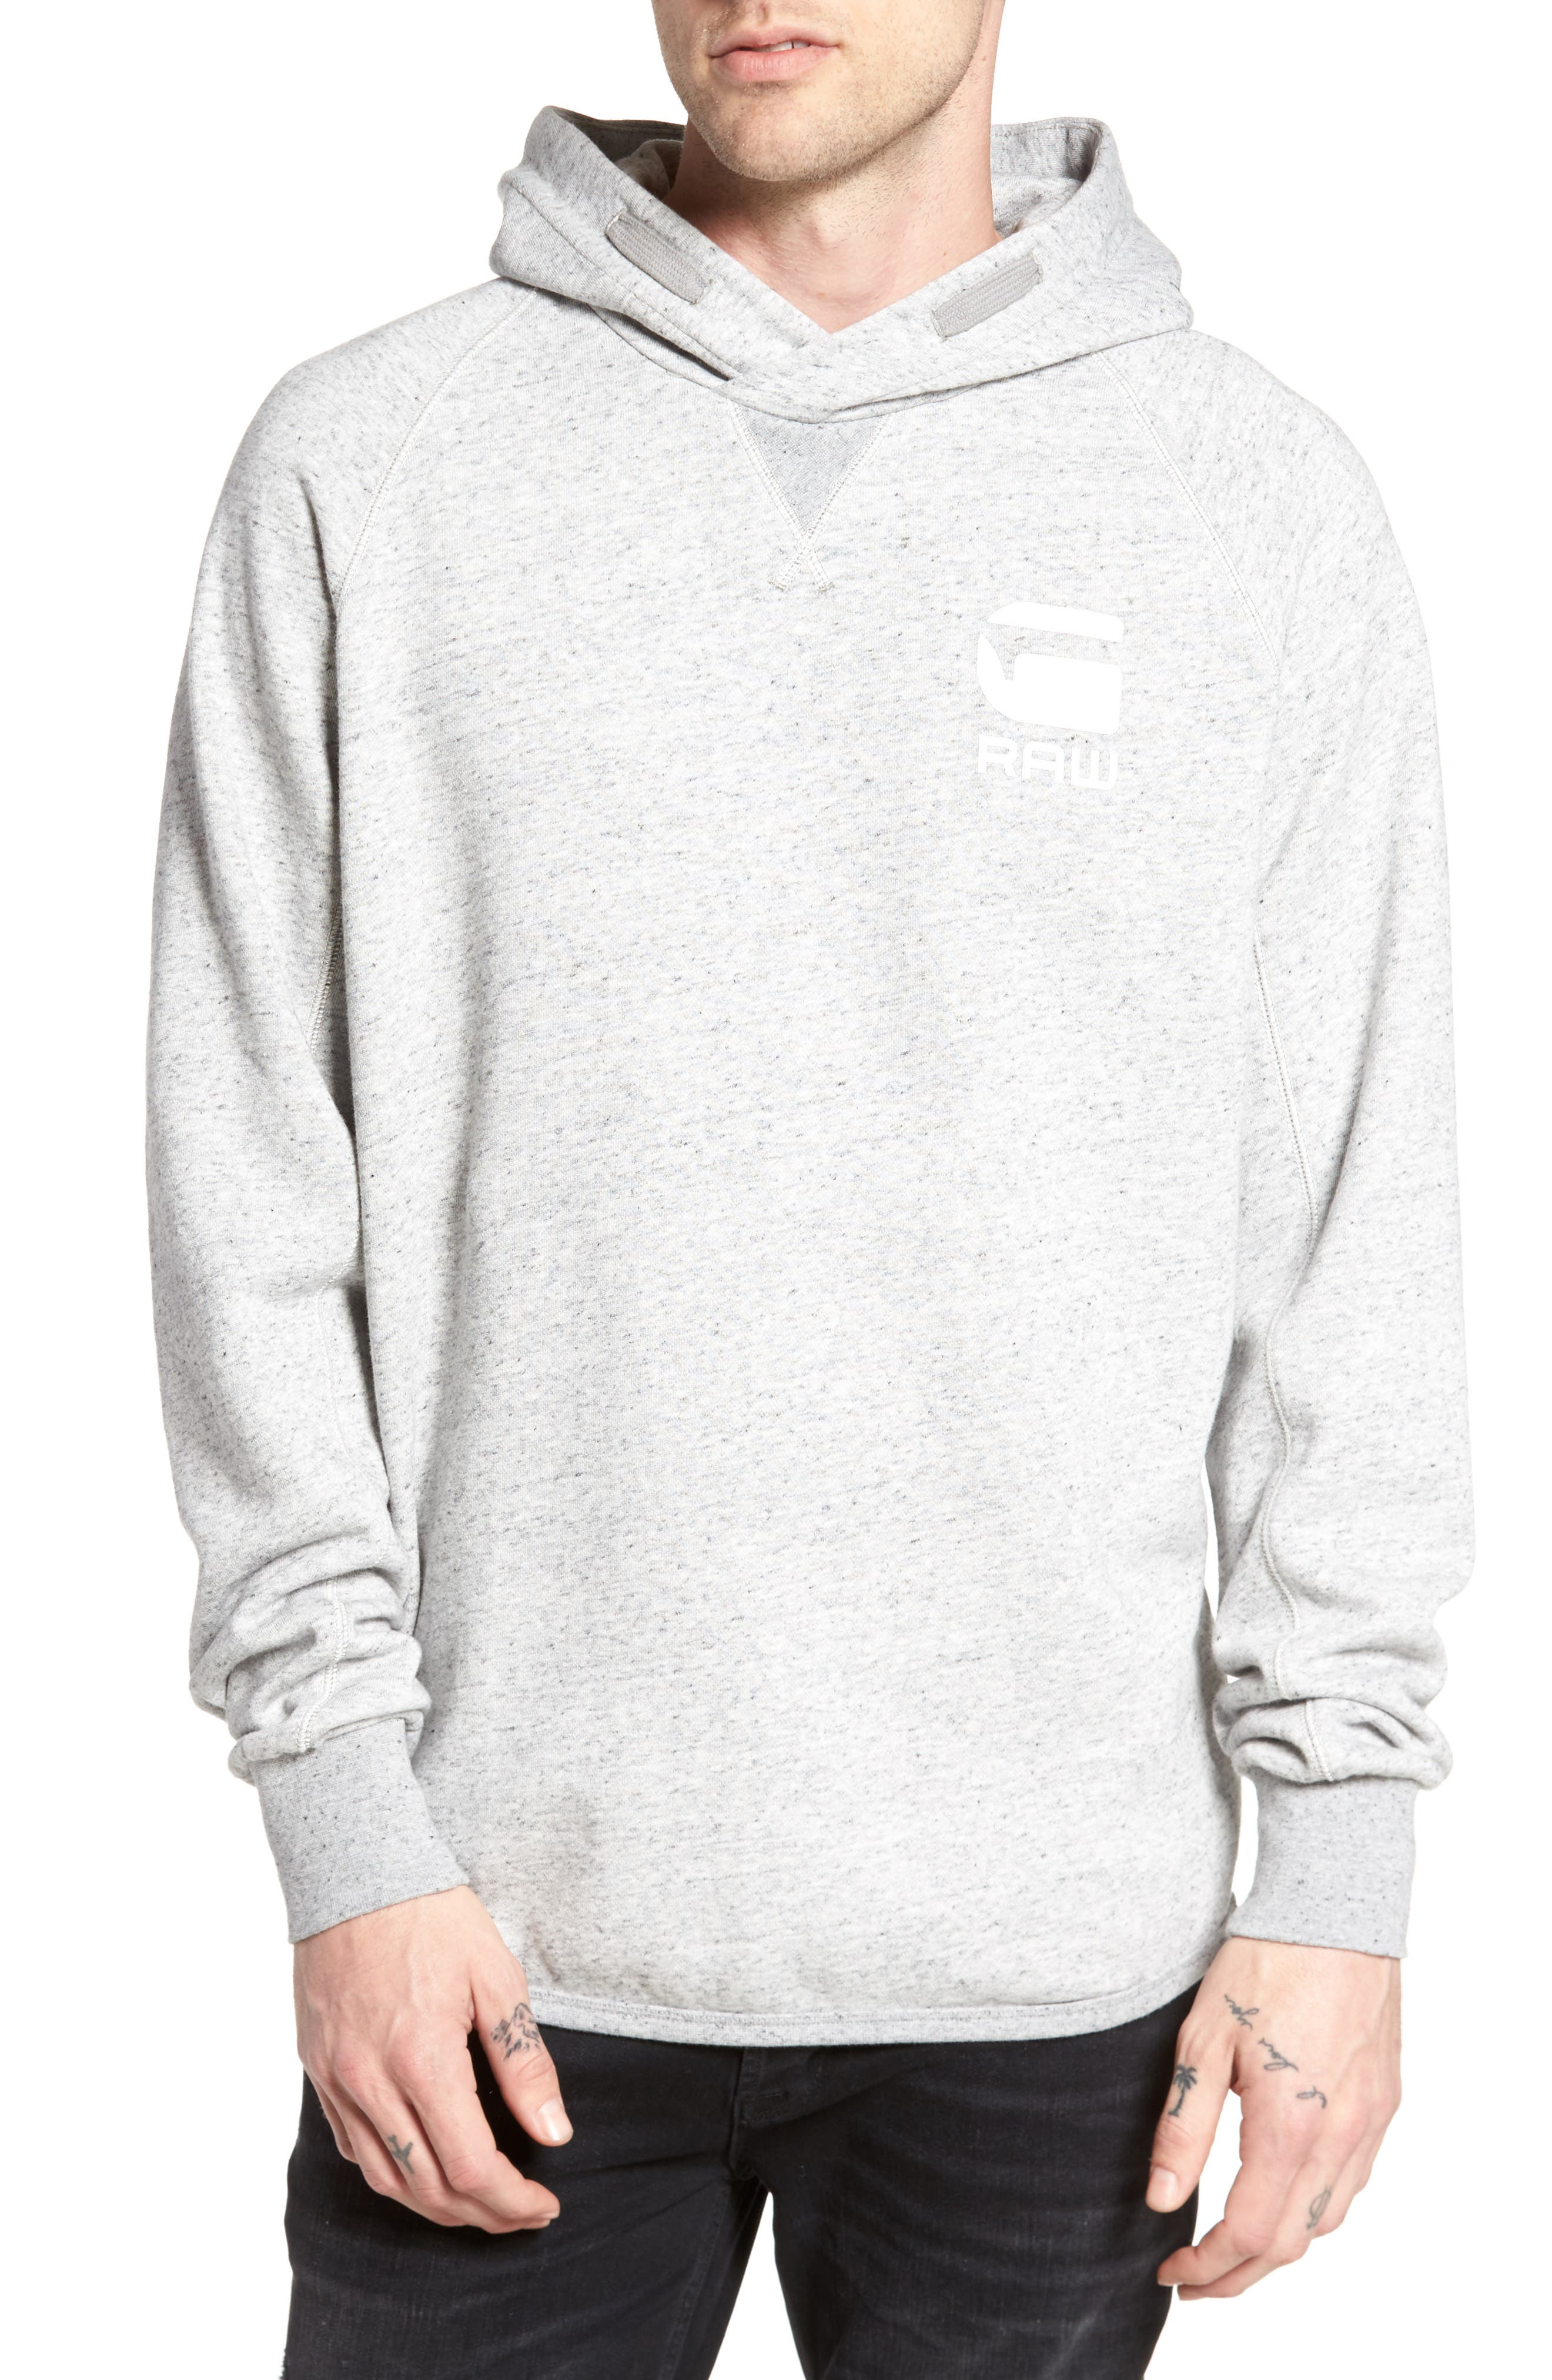 Callow Pullover Hoodie,                             Main thumbnail 1, color,                             020